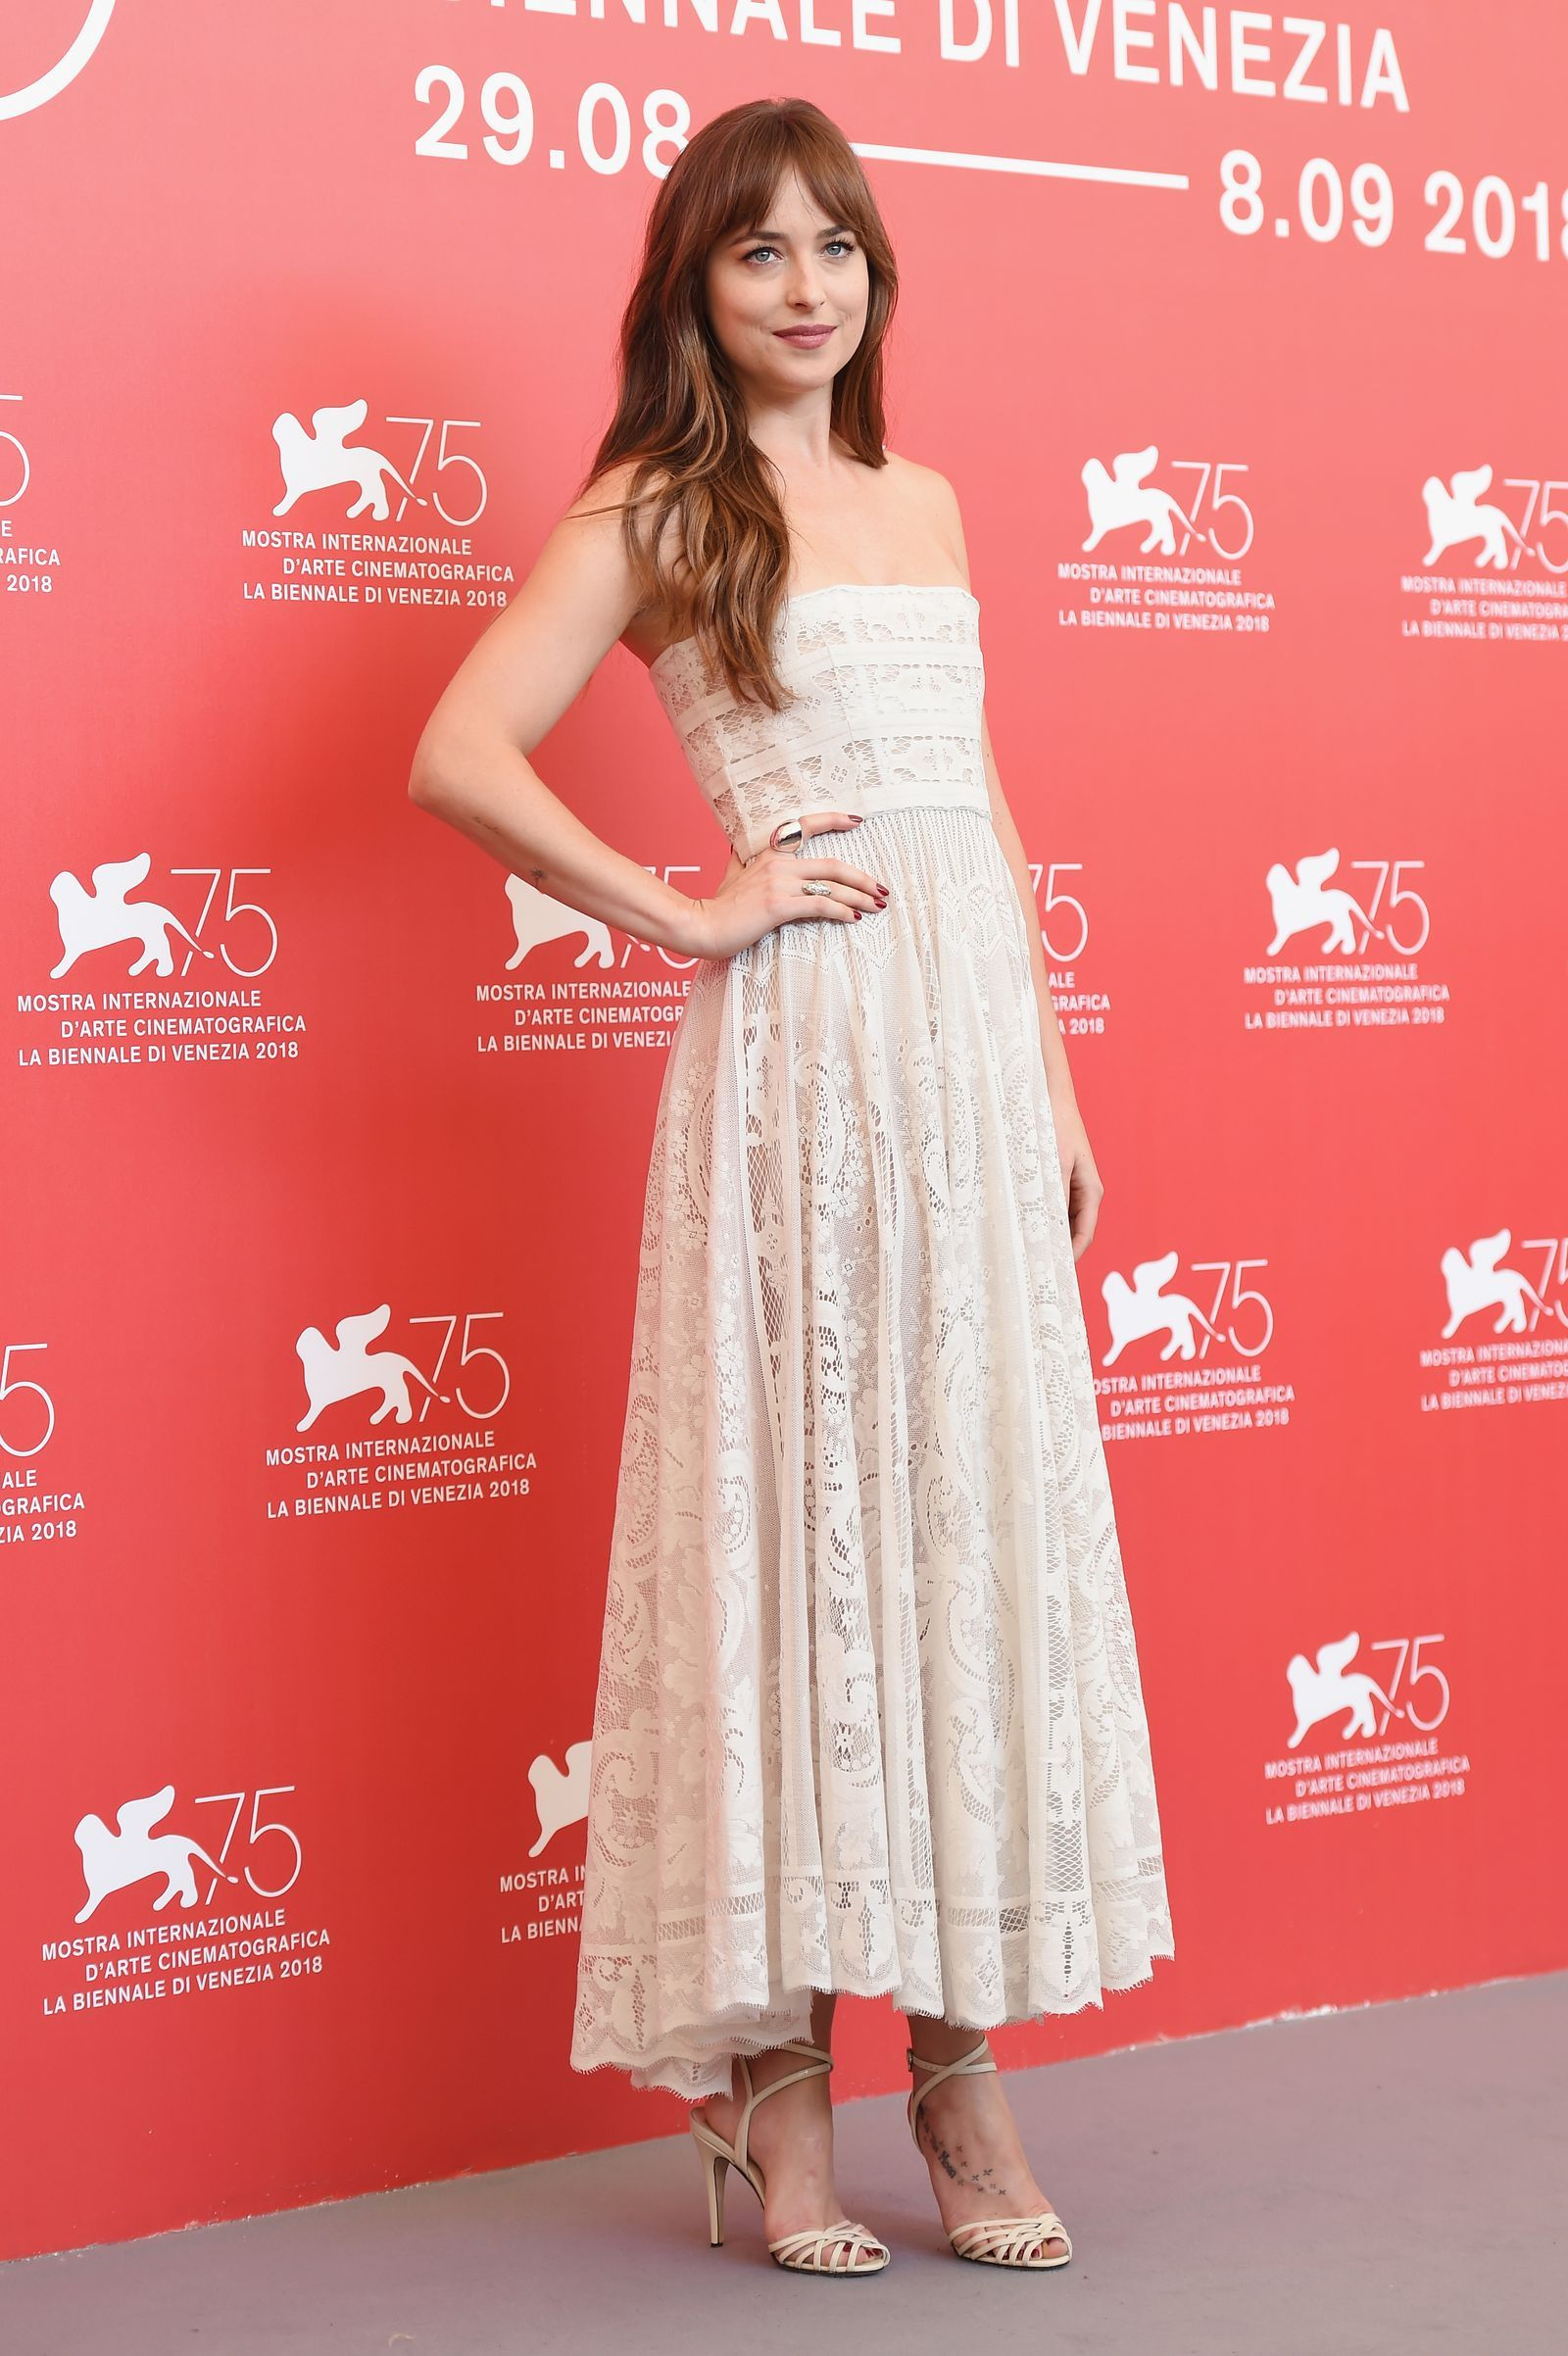 The Venice Film Festival Red Carpet Is Just As Good As